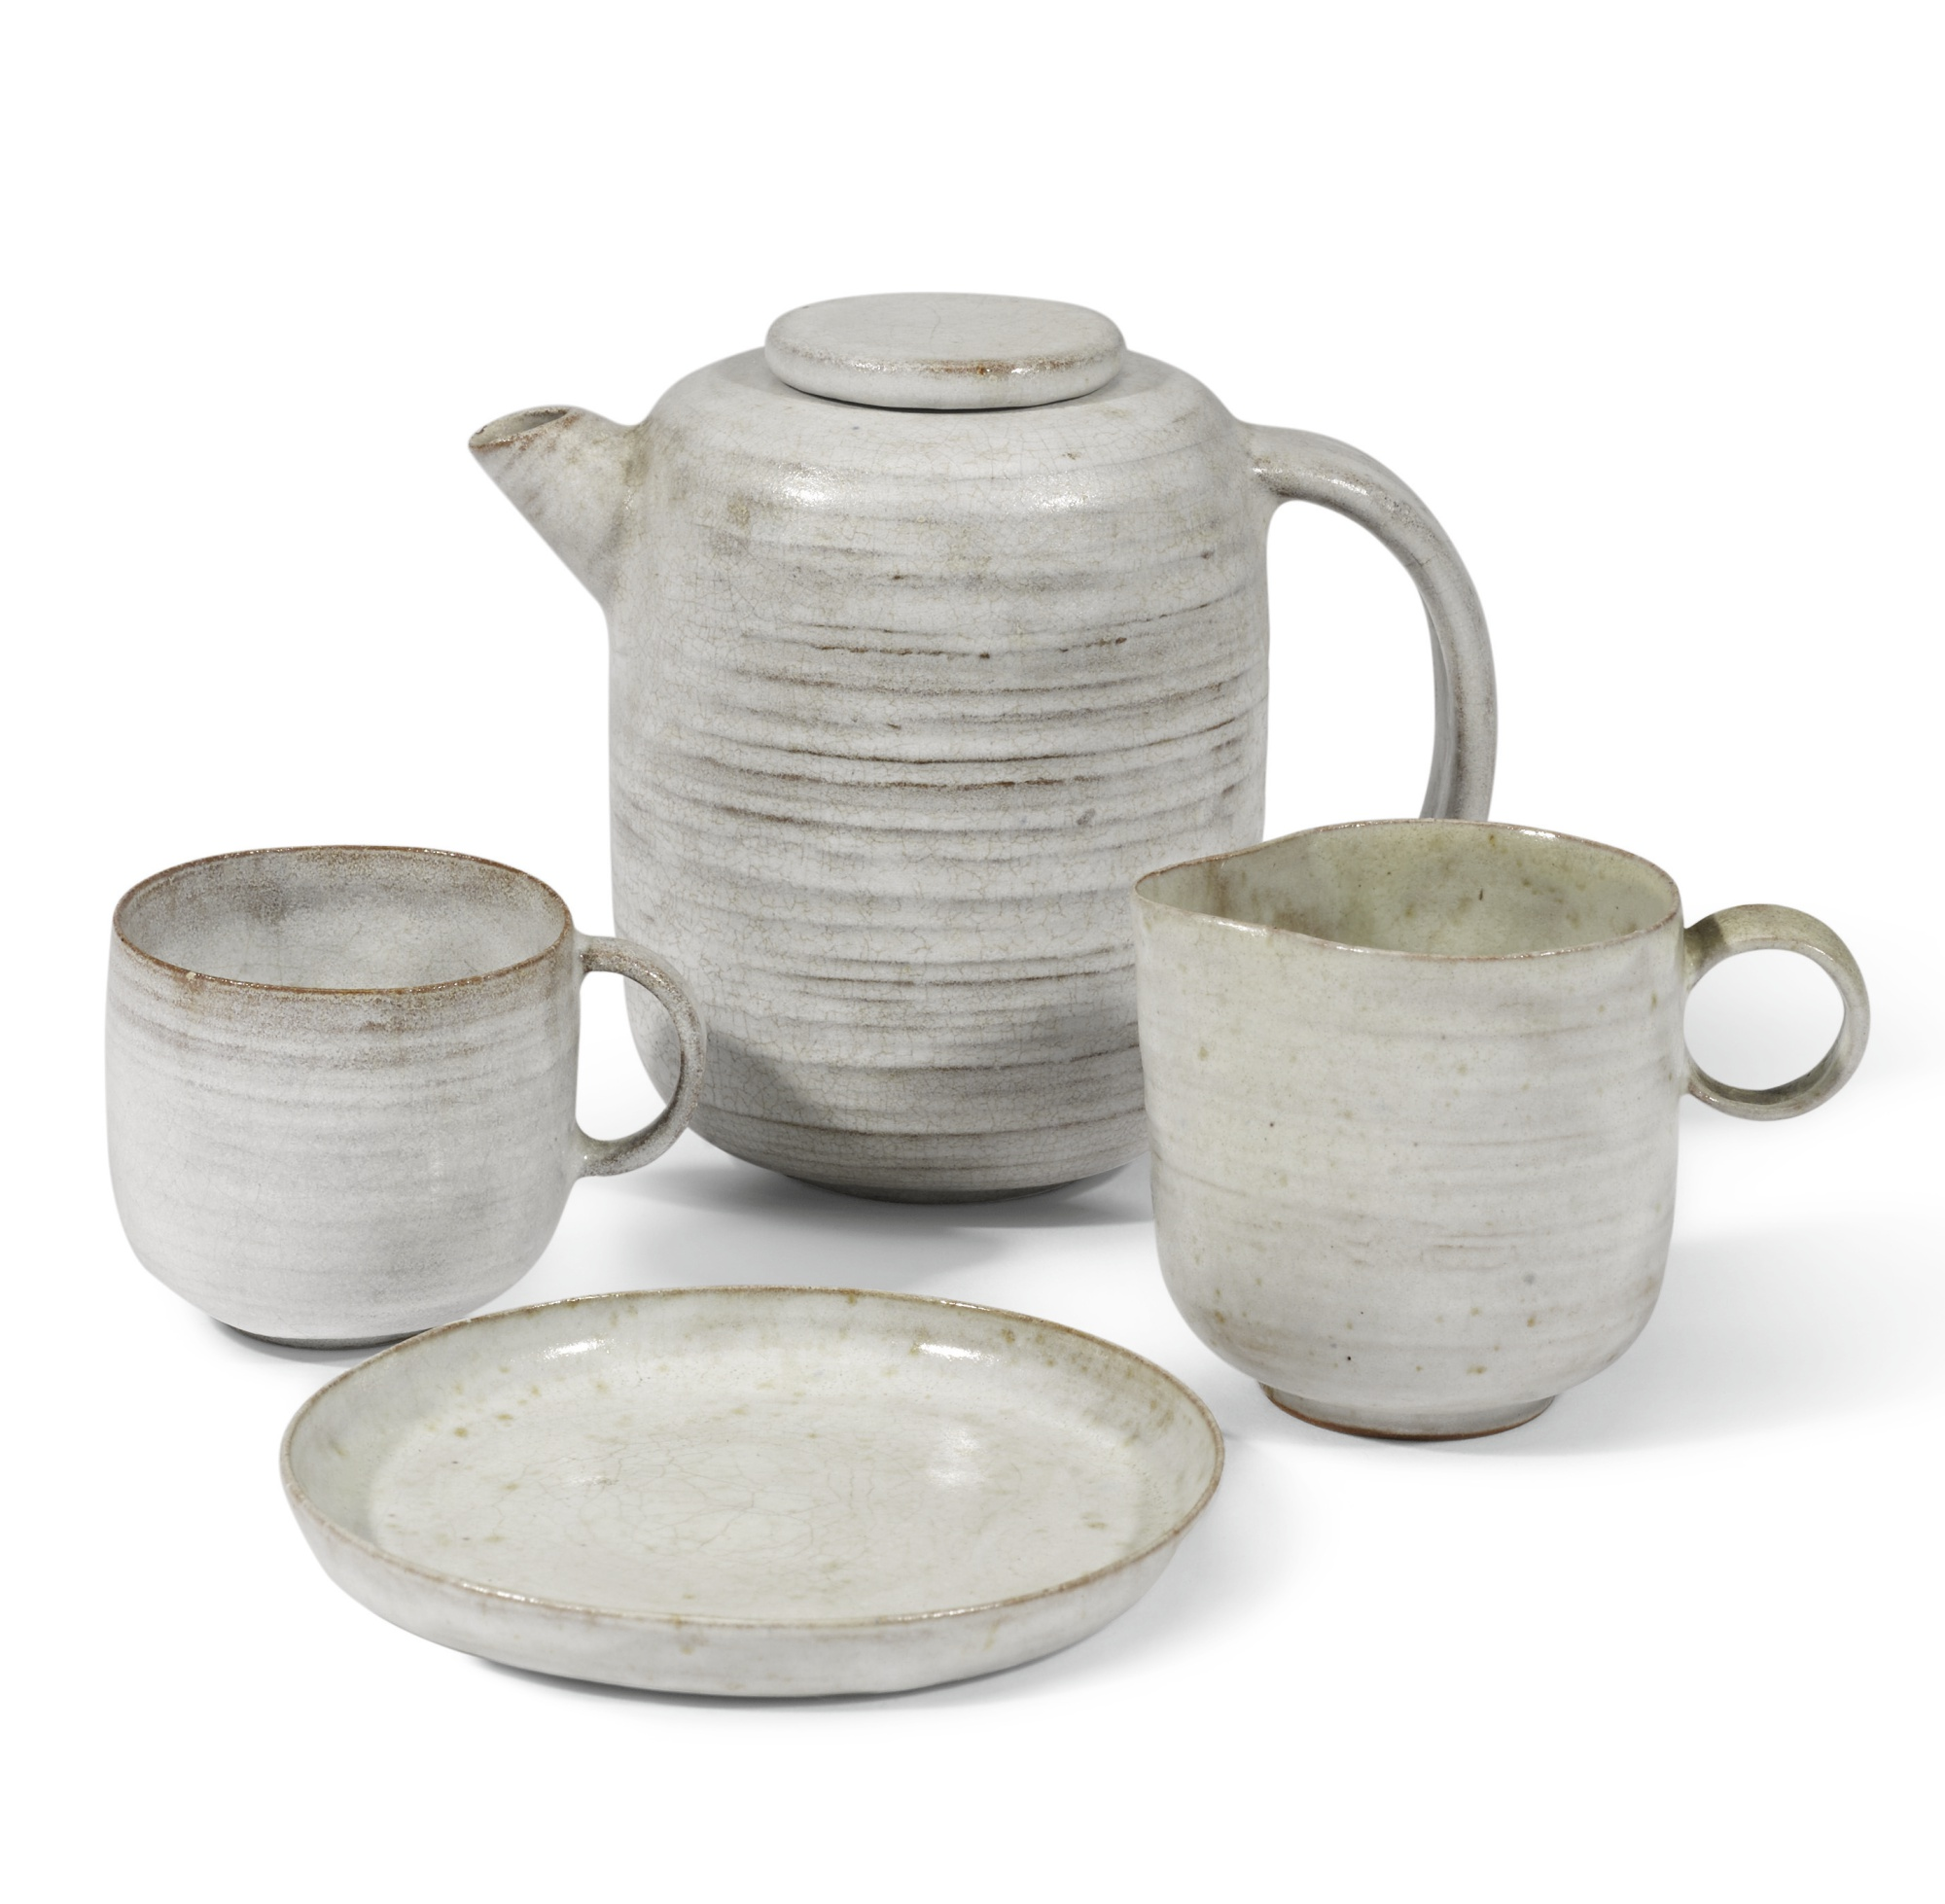 Lucie Rie-An Early Tea Set (Comprising Of A Teapot, Jug, Cup And Saucer)-1930